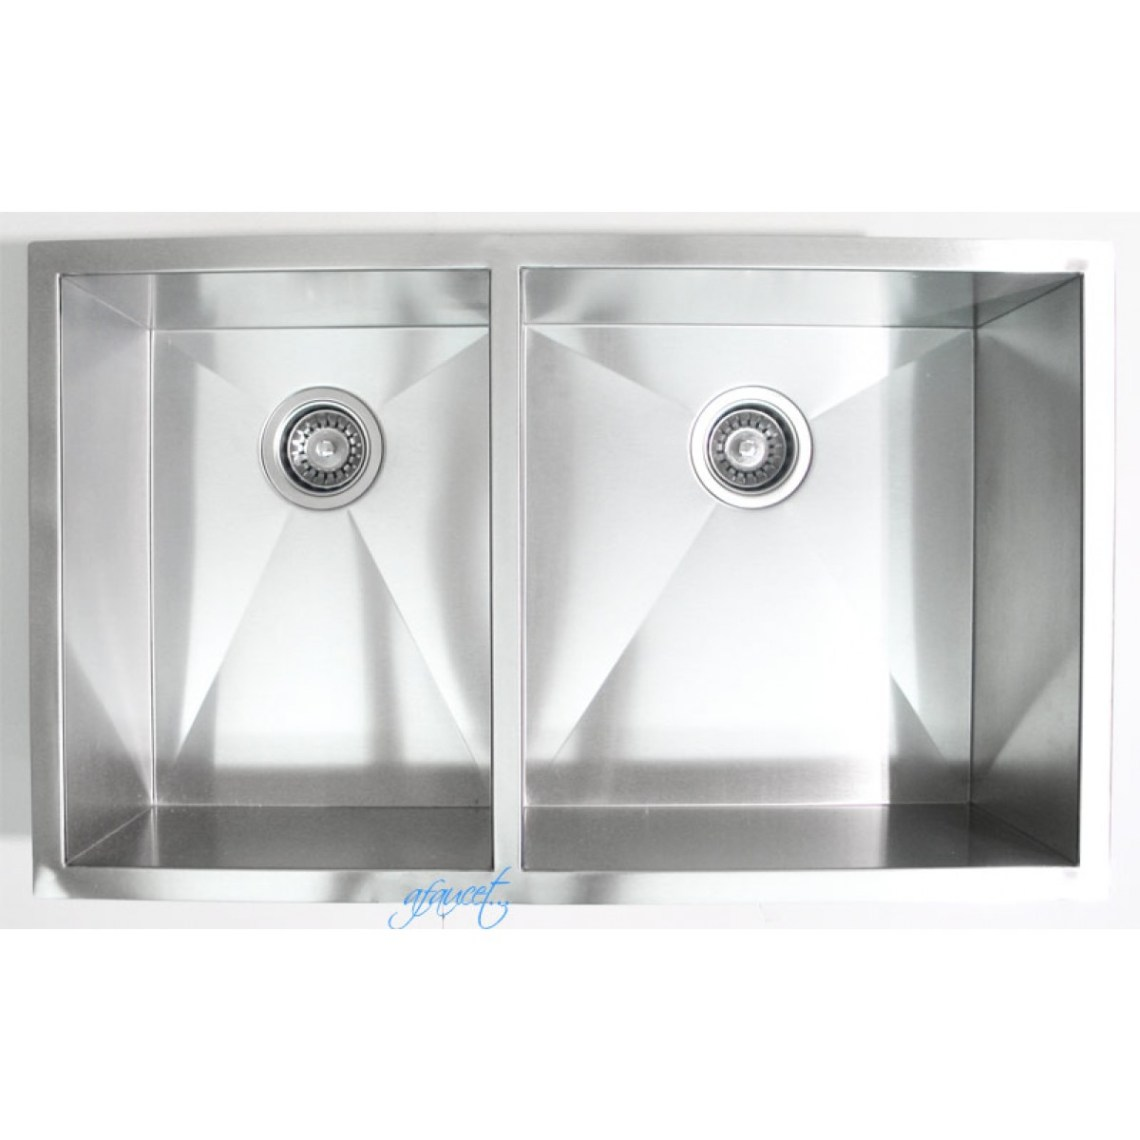 32 Inch Stainless Steel Undermount 40/60 Double Bowl ...